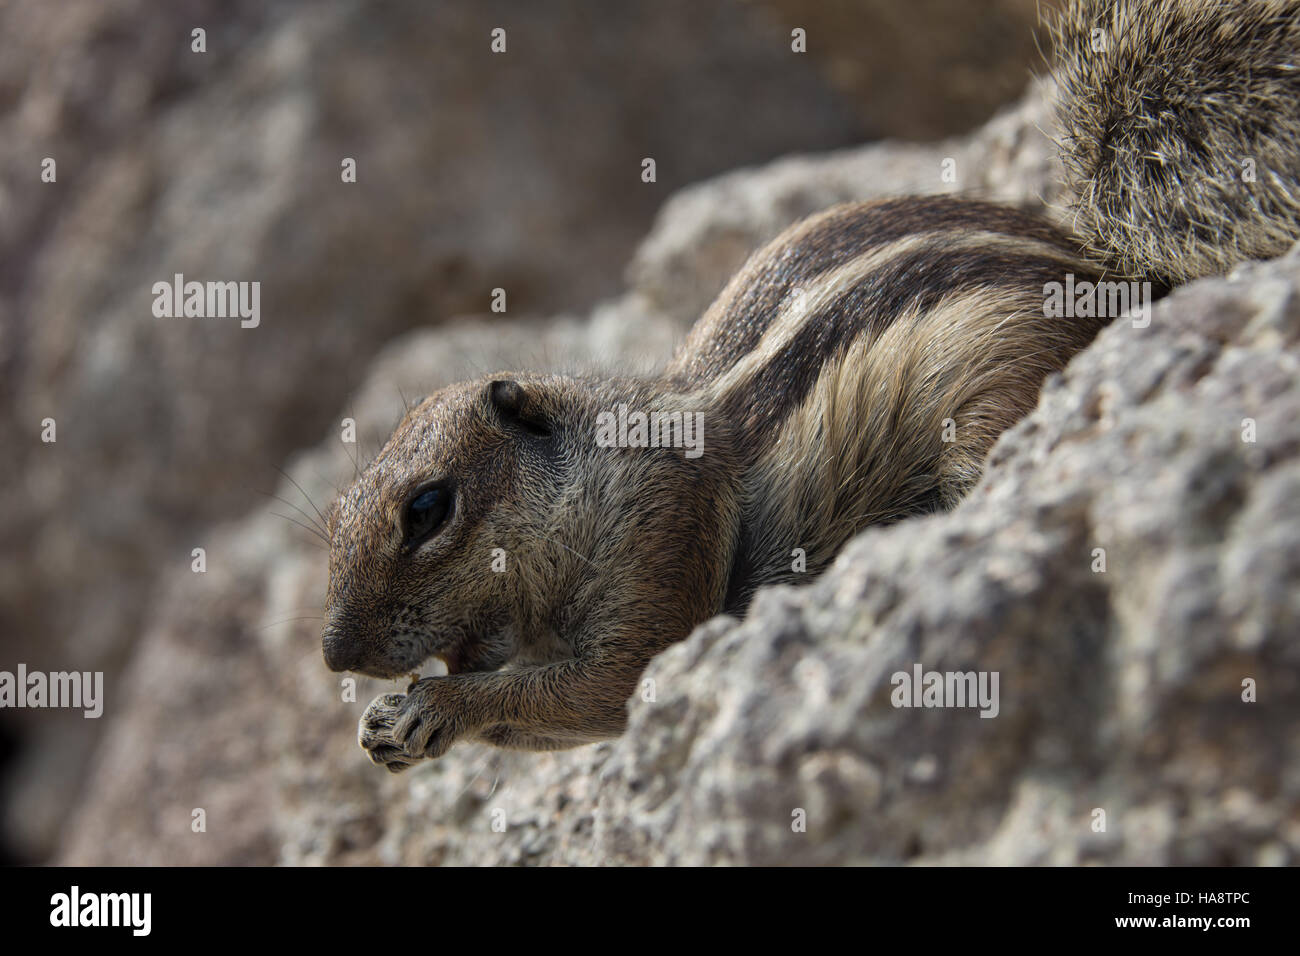 Squirrel, Fuerteventura, Canary Island - Stock Image